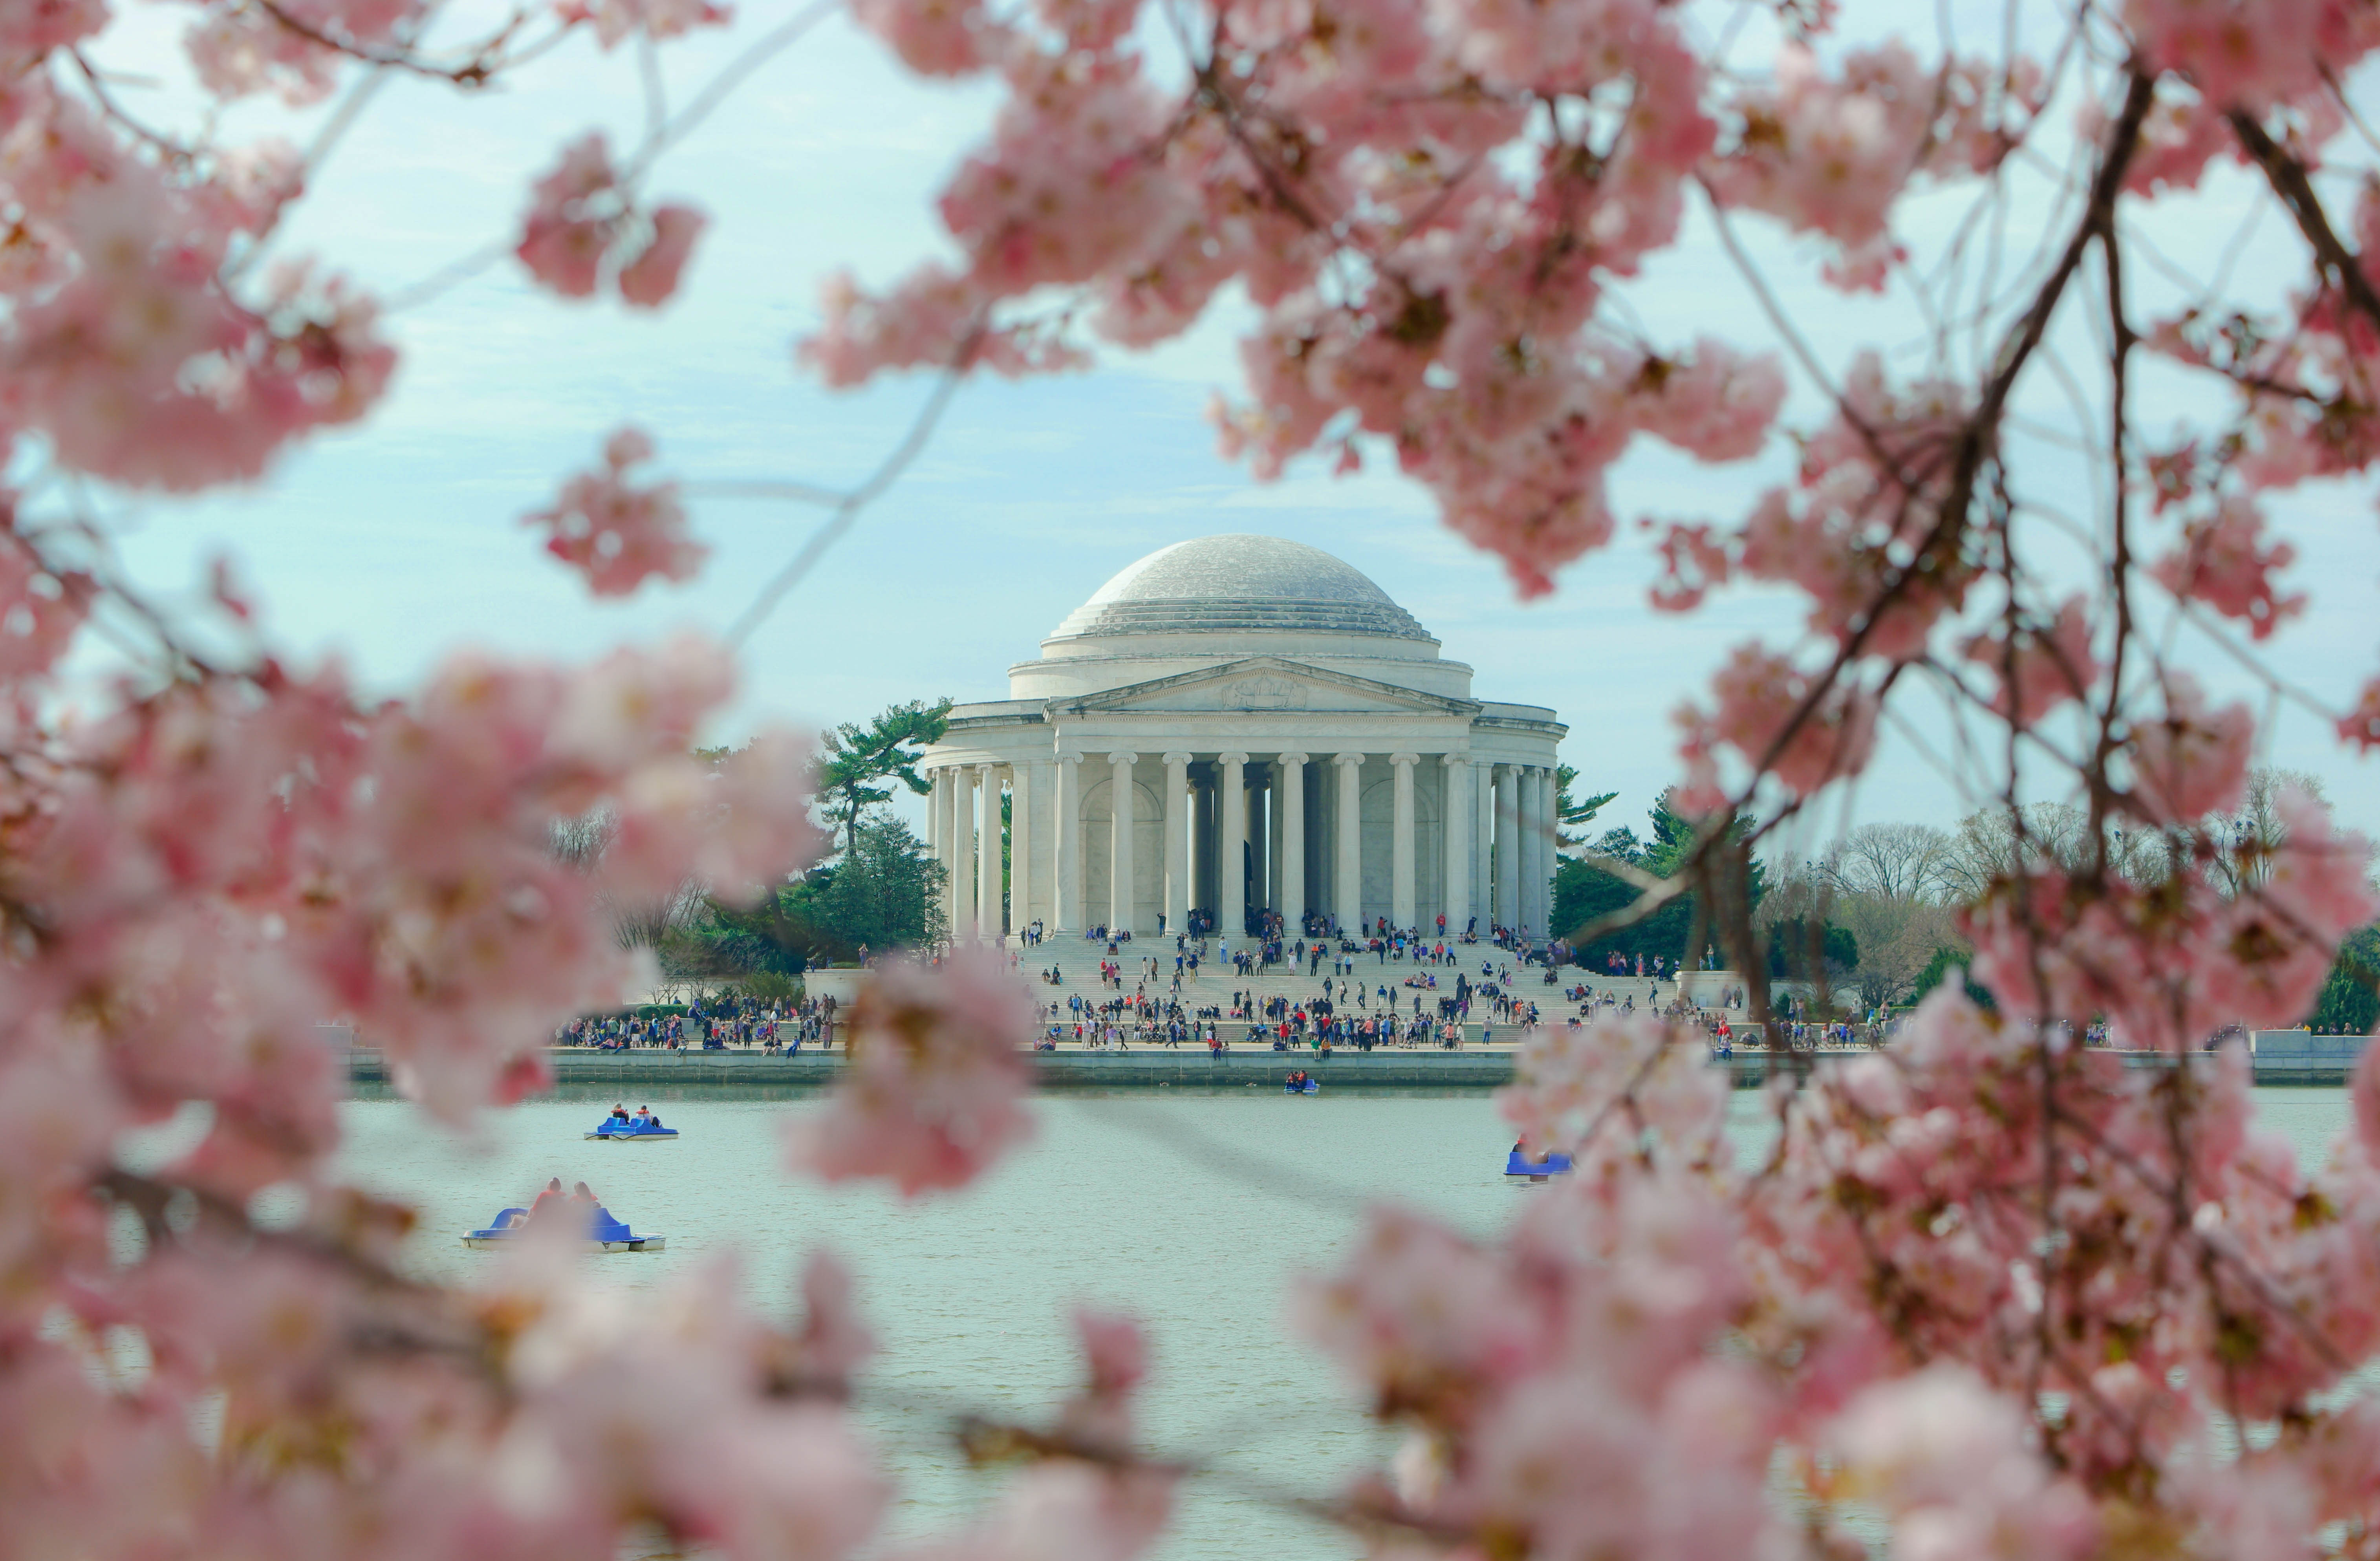 A Colorful Weekend Escape To The National Cherry Blossom Festival Whyy